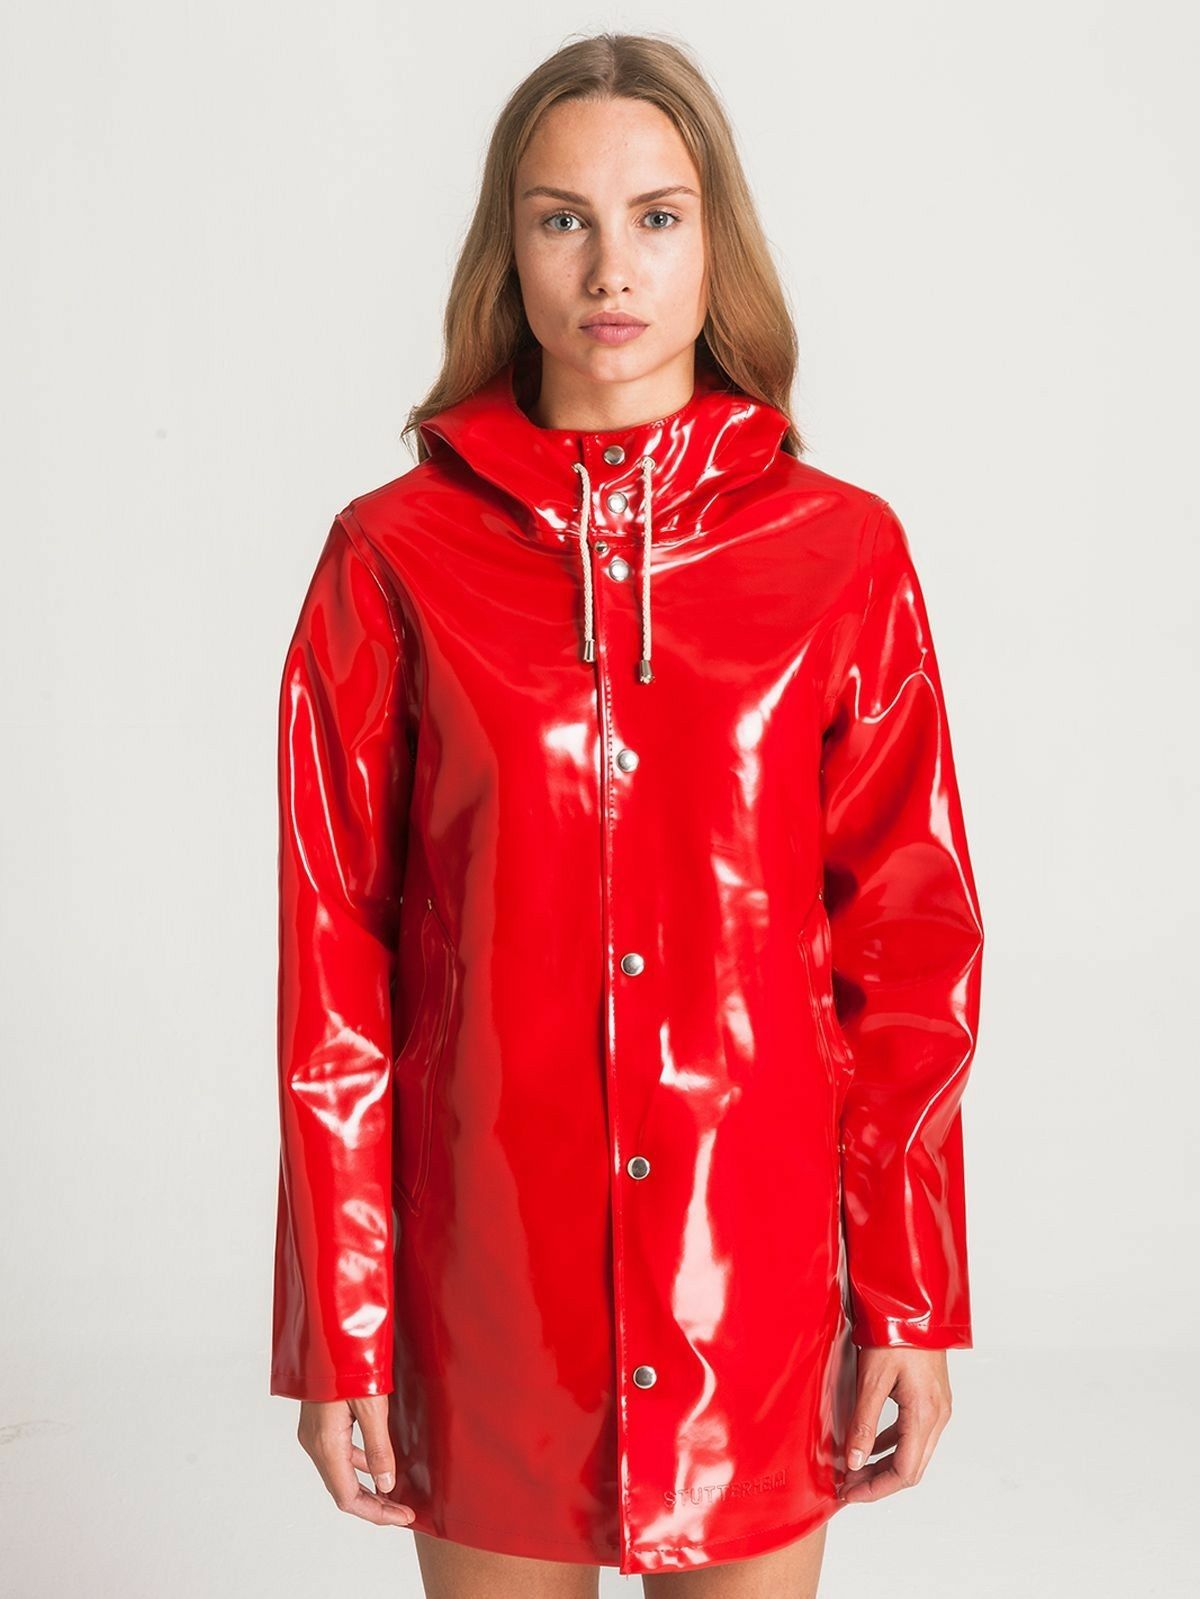 Red Raincoat, Raincoat Outfit, Hooded Raincoat, Rain Gear, Red Coats, Opal,  Jacket, Searching, Photos cd38d81406